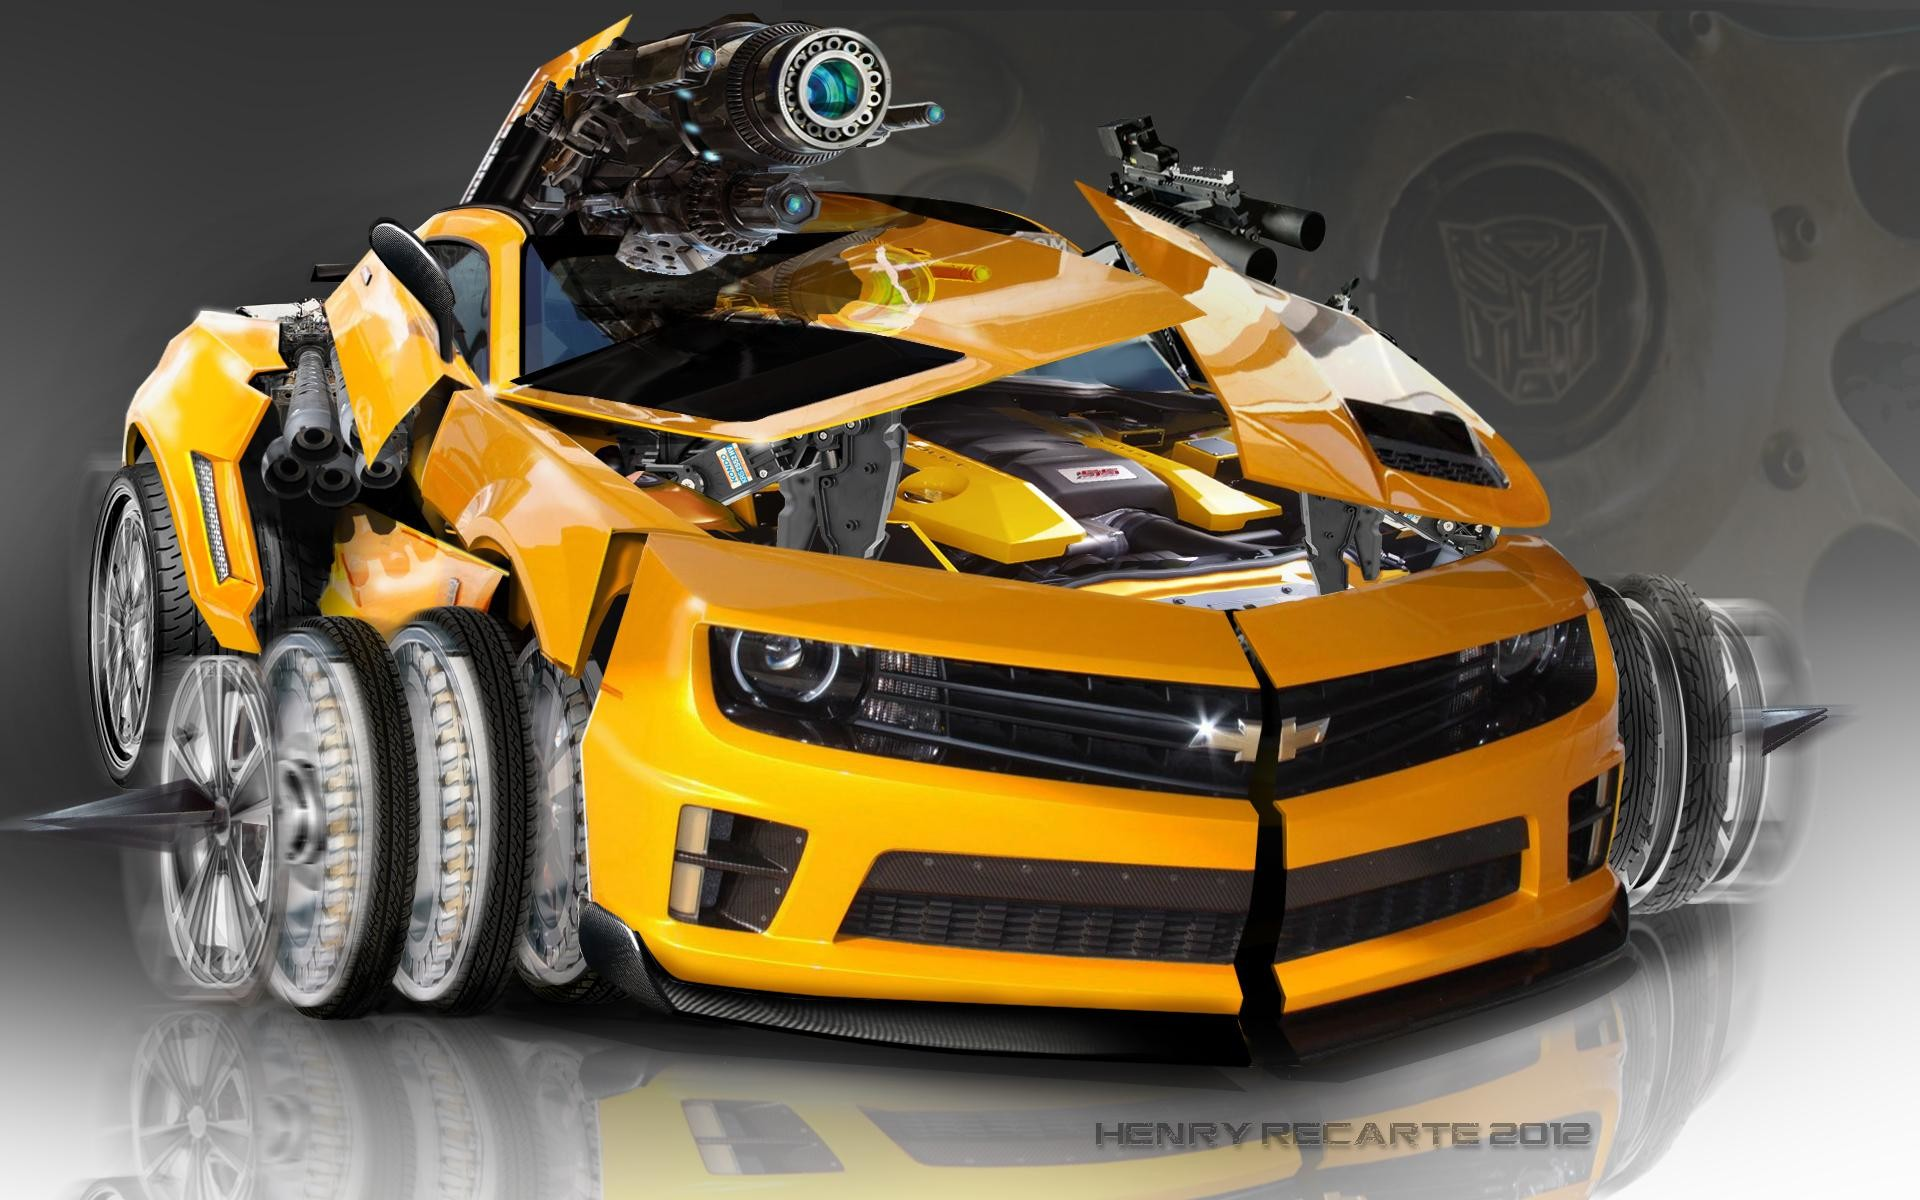 chevrolet camaro transformers 2 with Bumblebee 2018 Wallpaper Hd on Black Hot Cars Wallpaper 30 Background furthermore Chevrolet Camaro Concept 2006 moreover 1977 Camaro Z28 Bumblebee besides 489747 New Camaro Lookin Sexy Pics also Mad Maro 45 Of The Coolest Chevrolet Camaro Ads Of All Time.